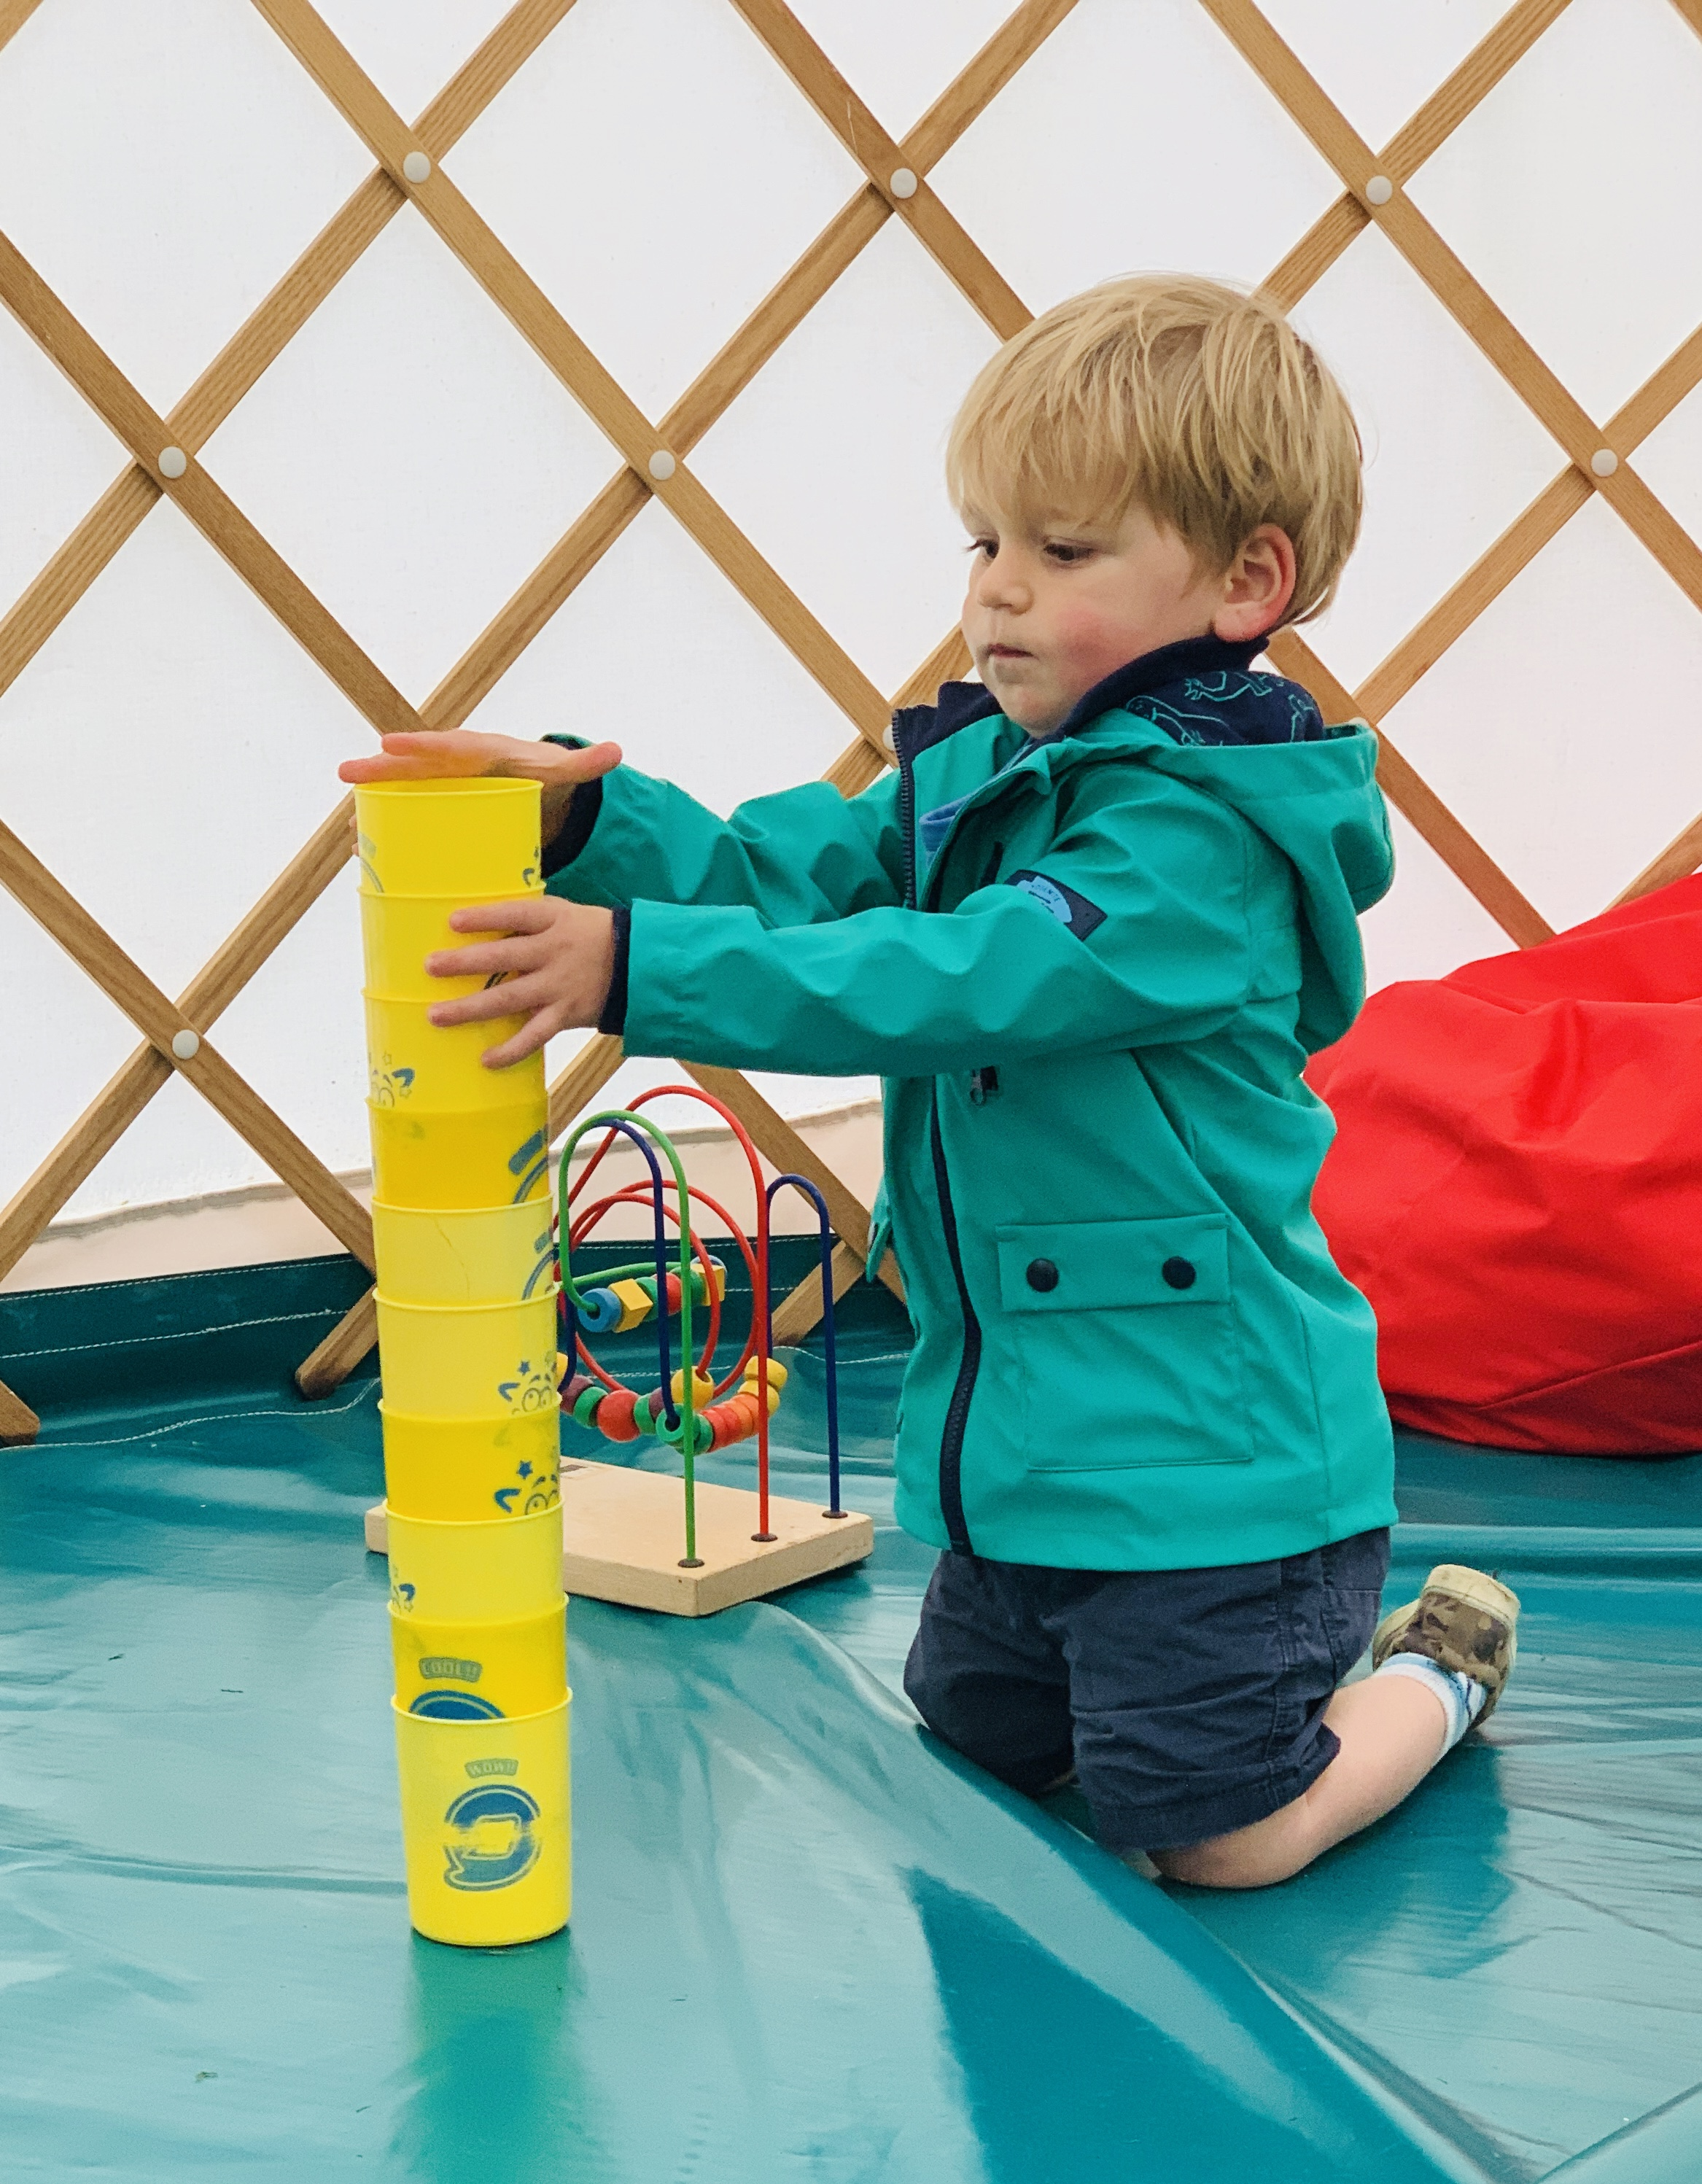 Toddler in the Greenwood Grange play yurt